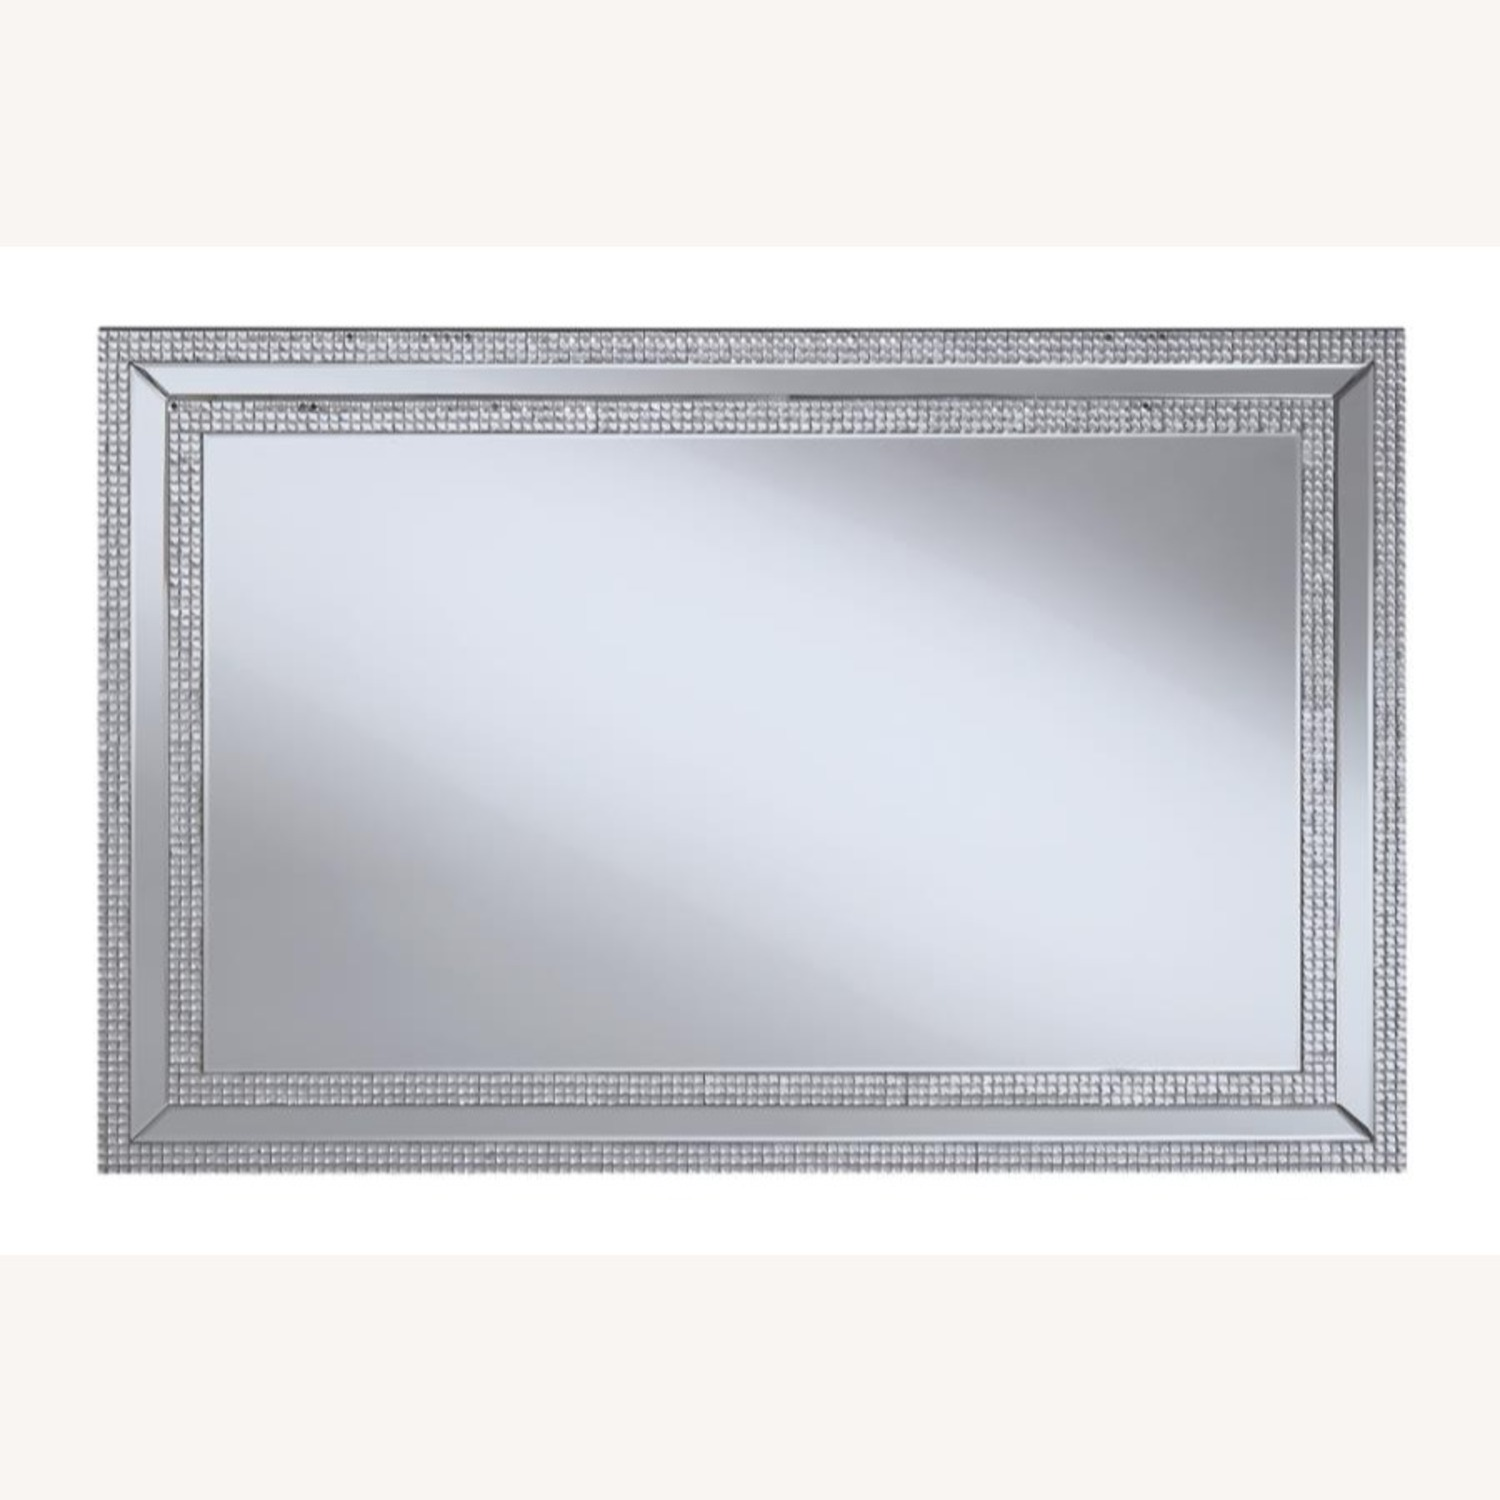 Wall Mirror In Clear Finish W/ Rows of Jewels - image-1